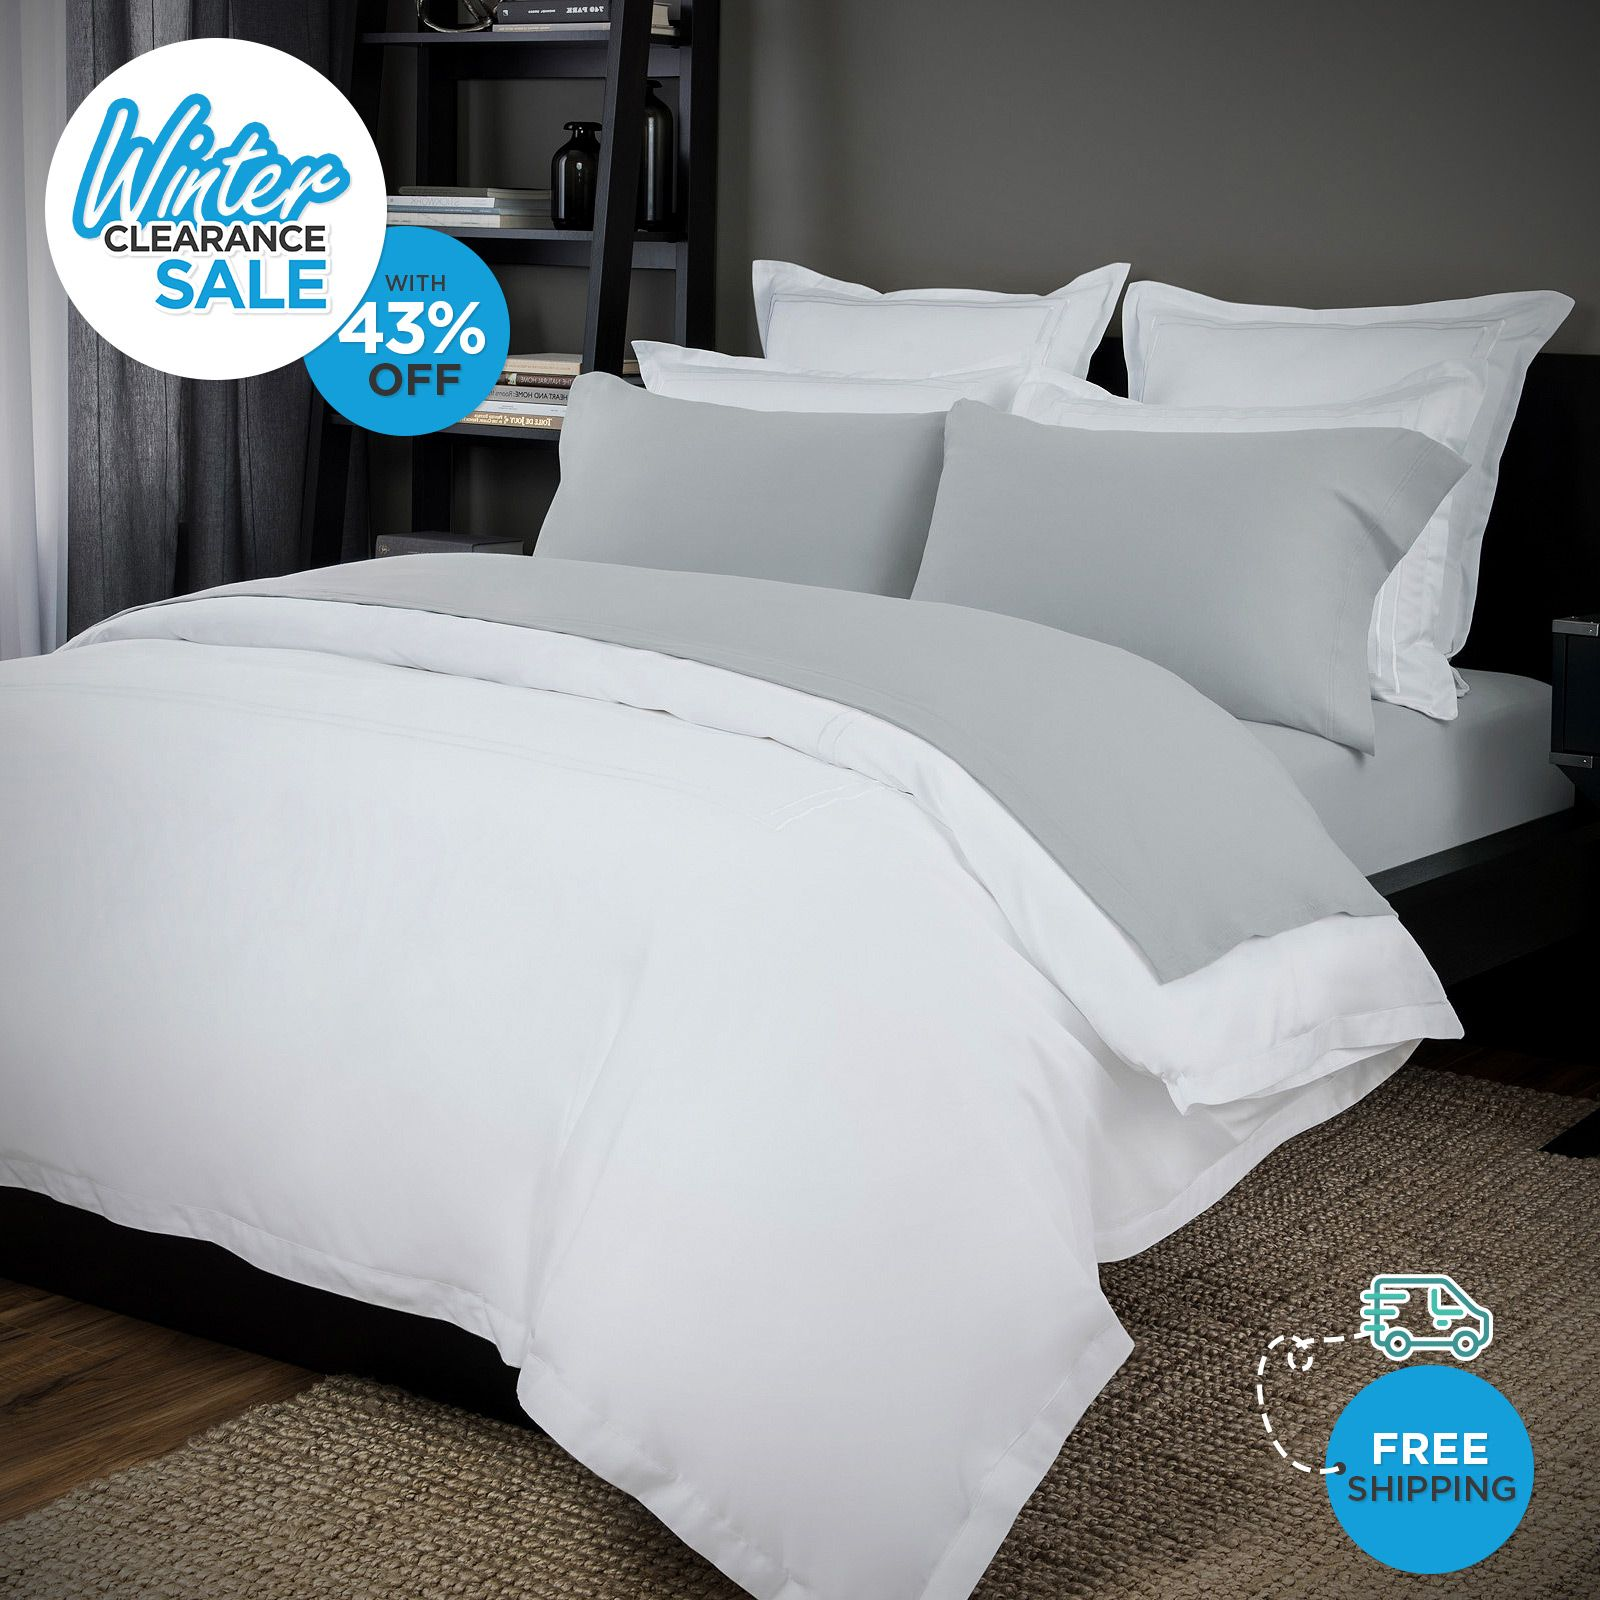 Irresistibly Comfortable Bed Linen Available In 7 Different Shades. Buy Now  In As Low As